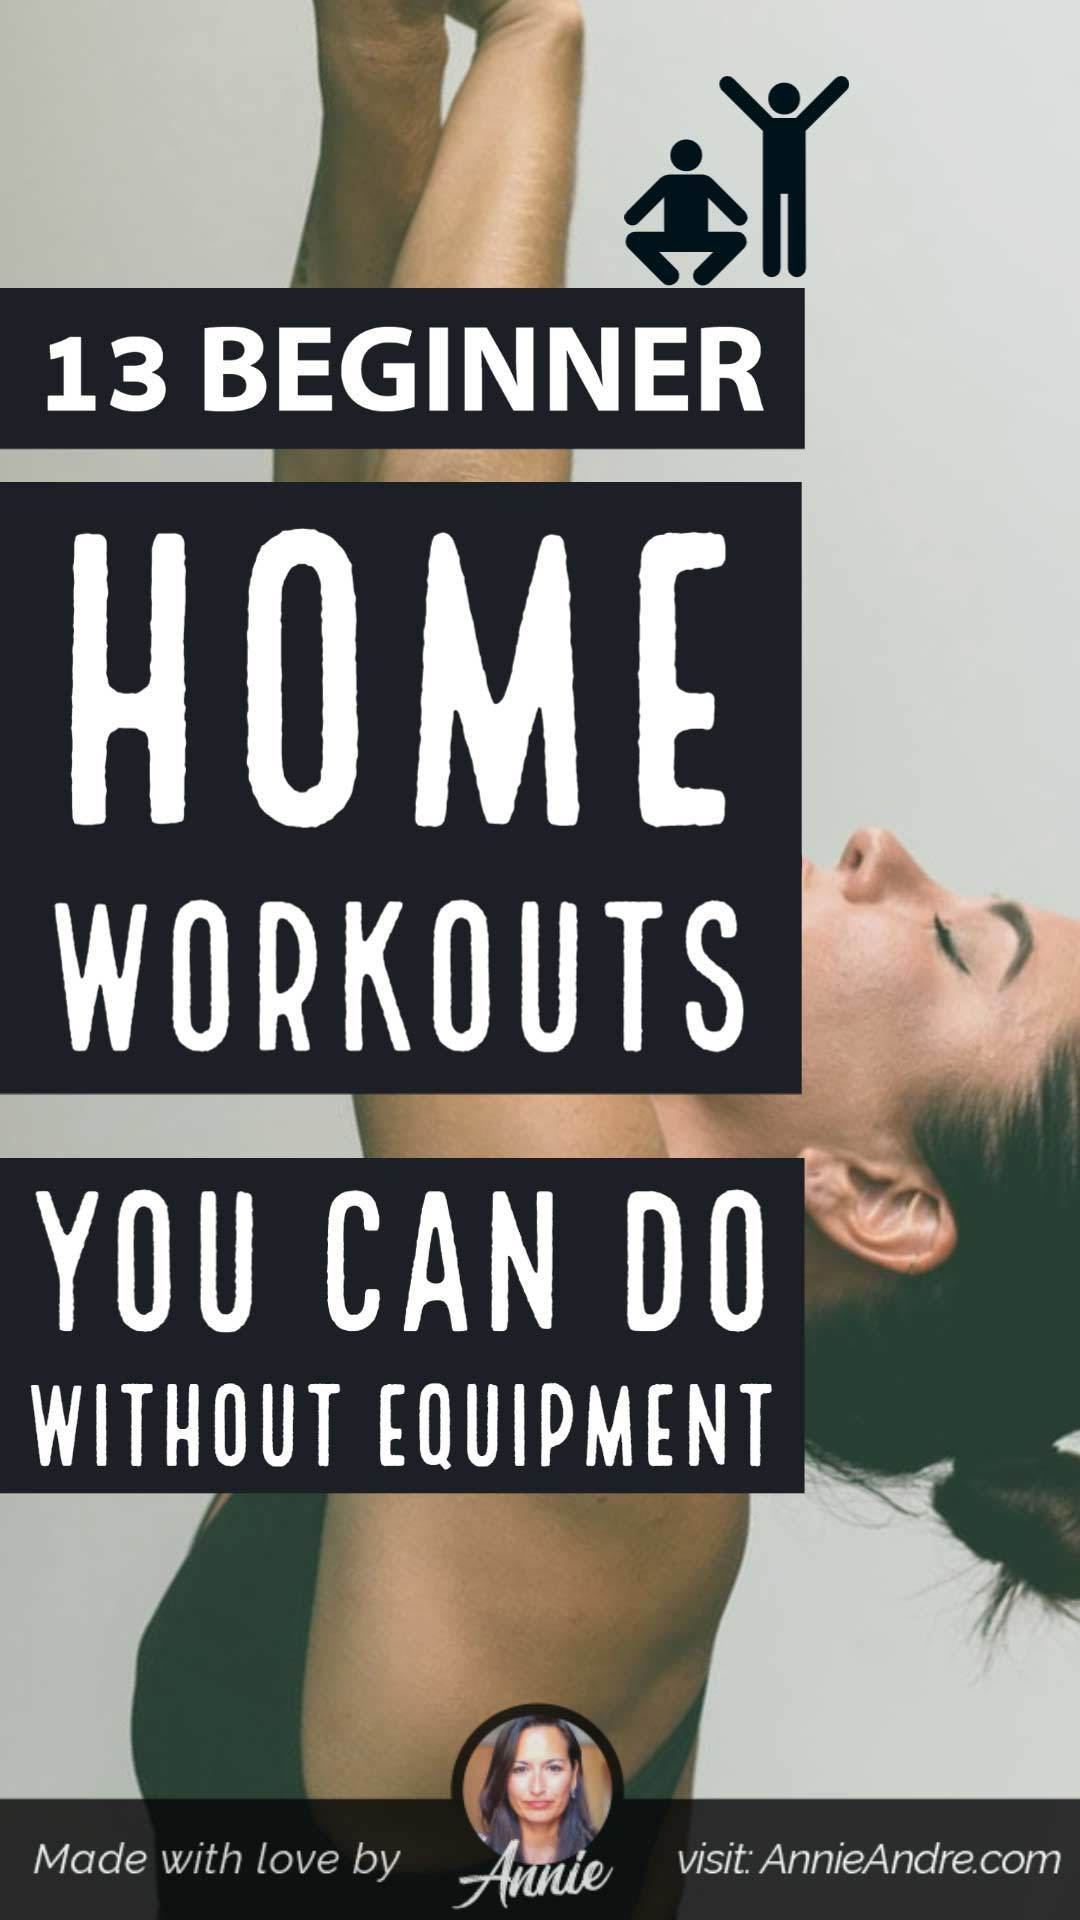 Fun home workouts you can do without equipment